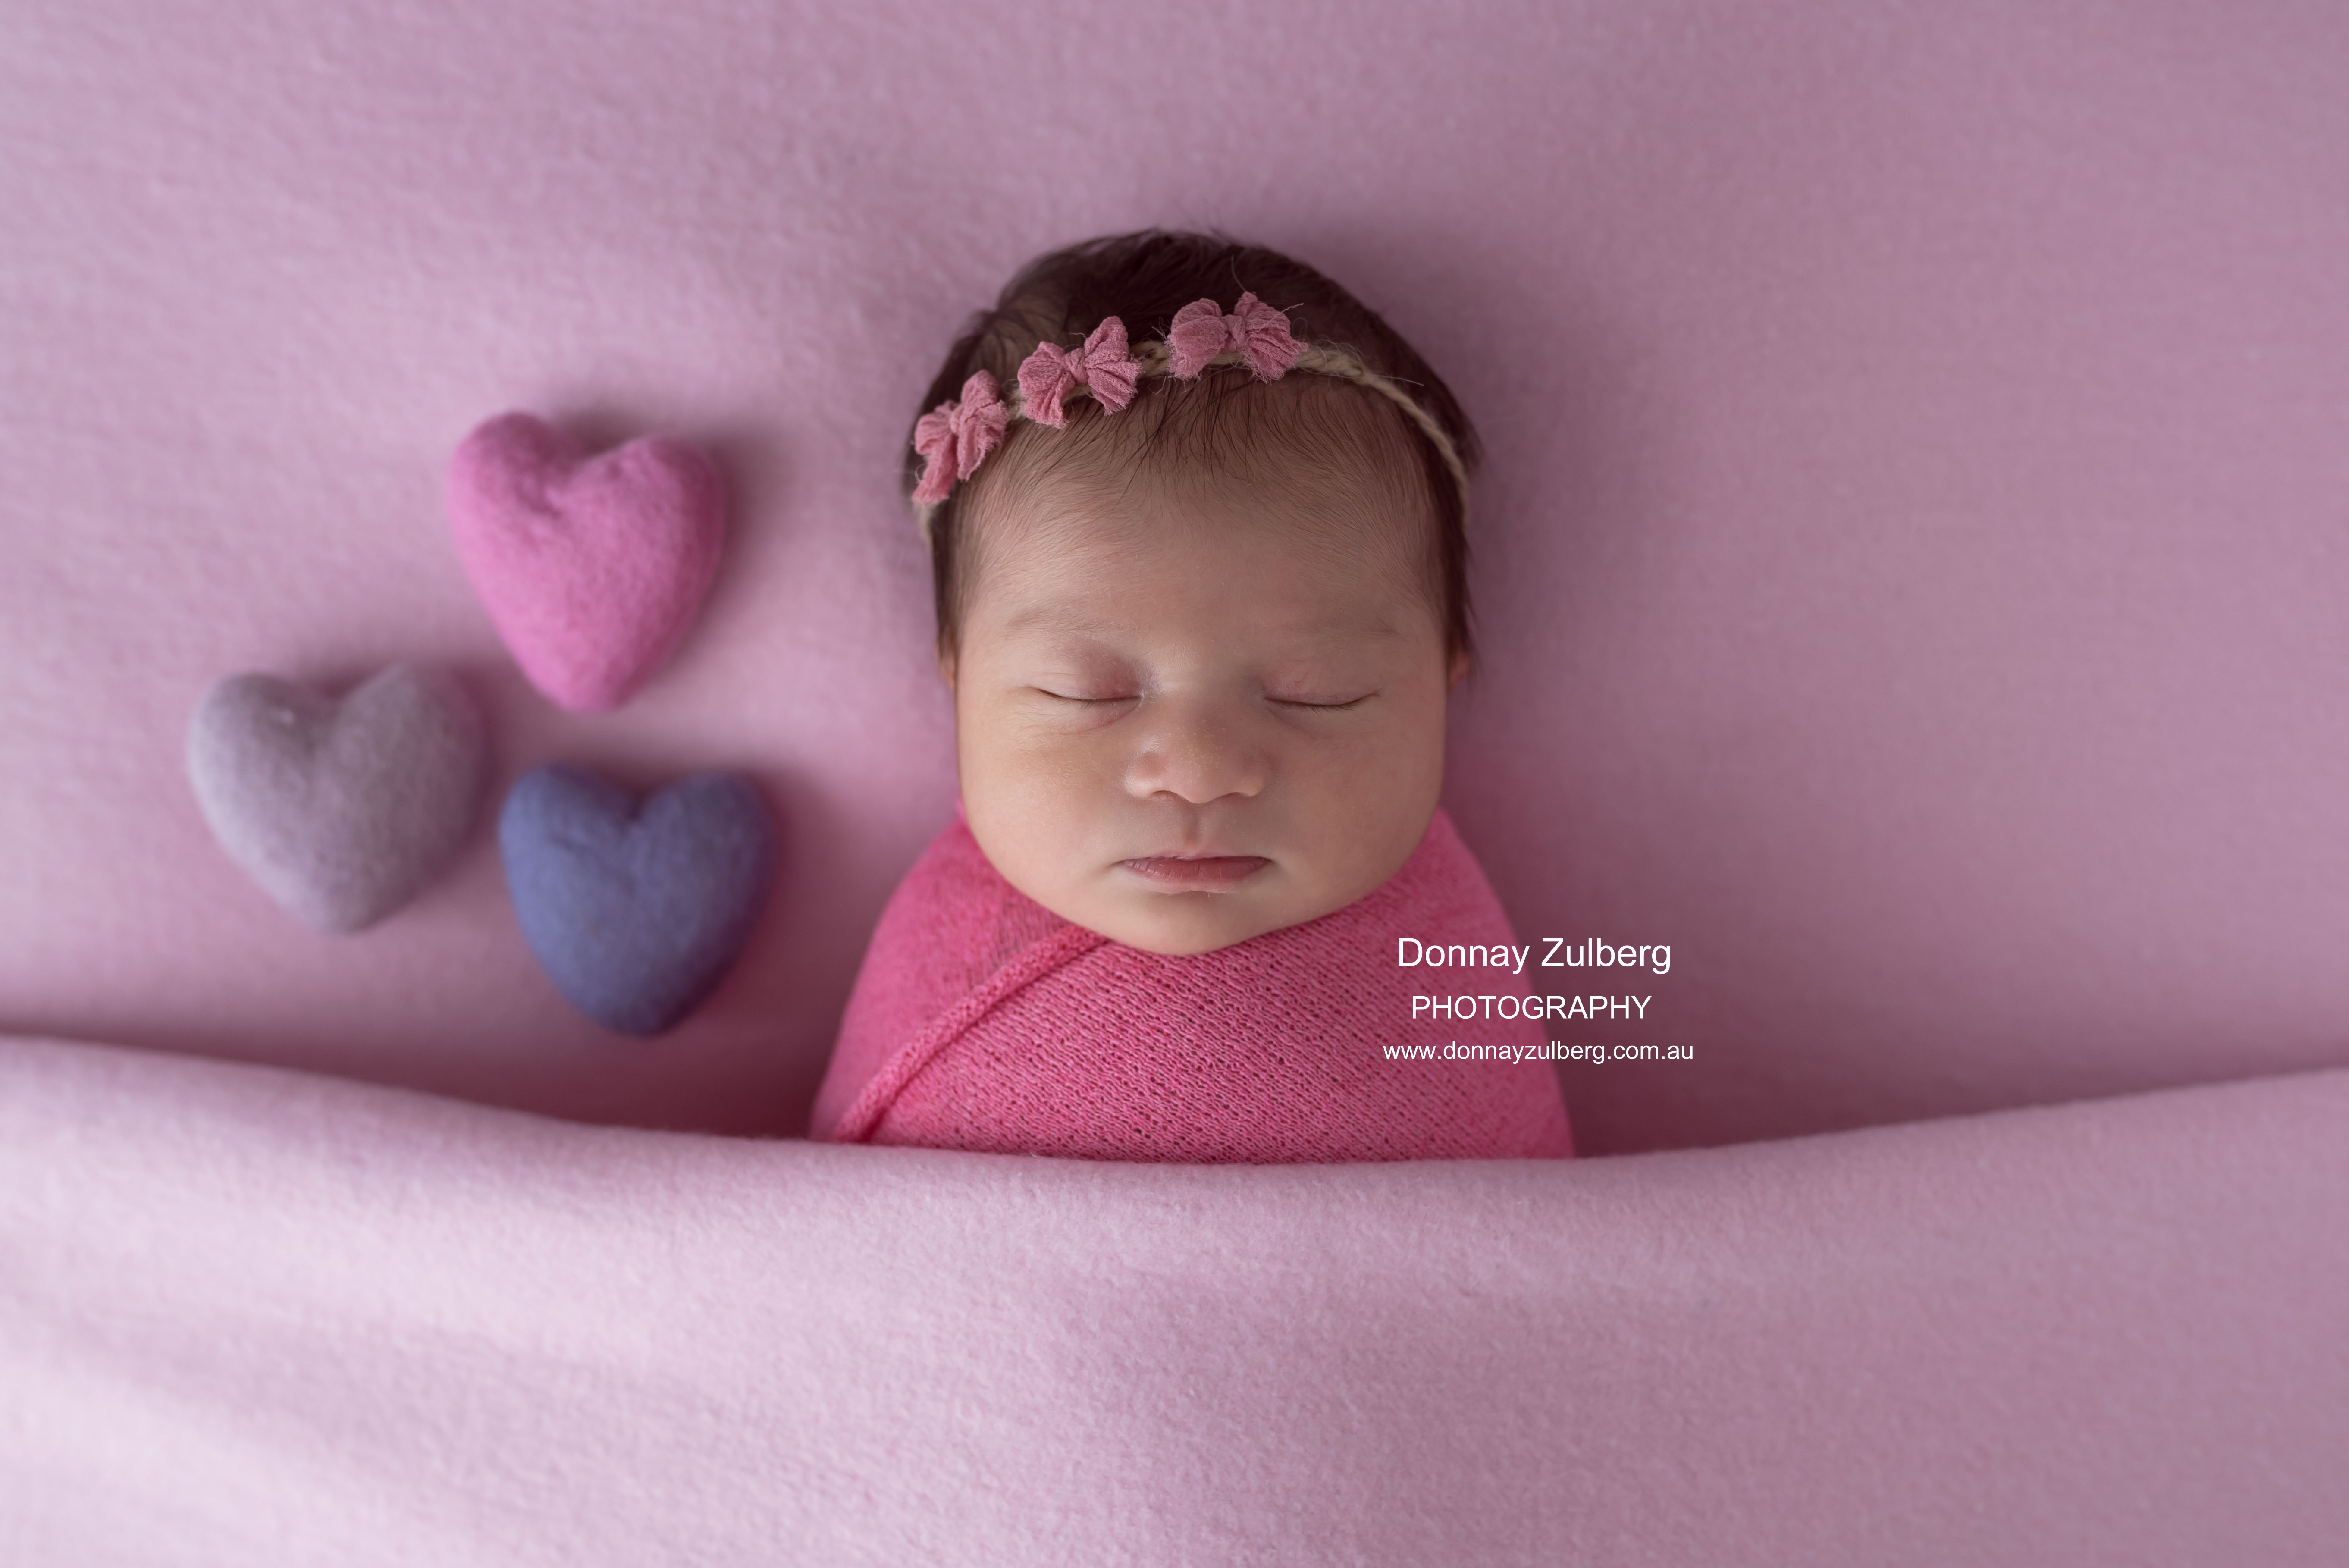 Donnay Zulberg Photography